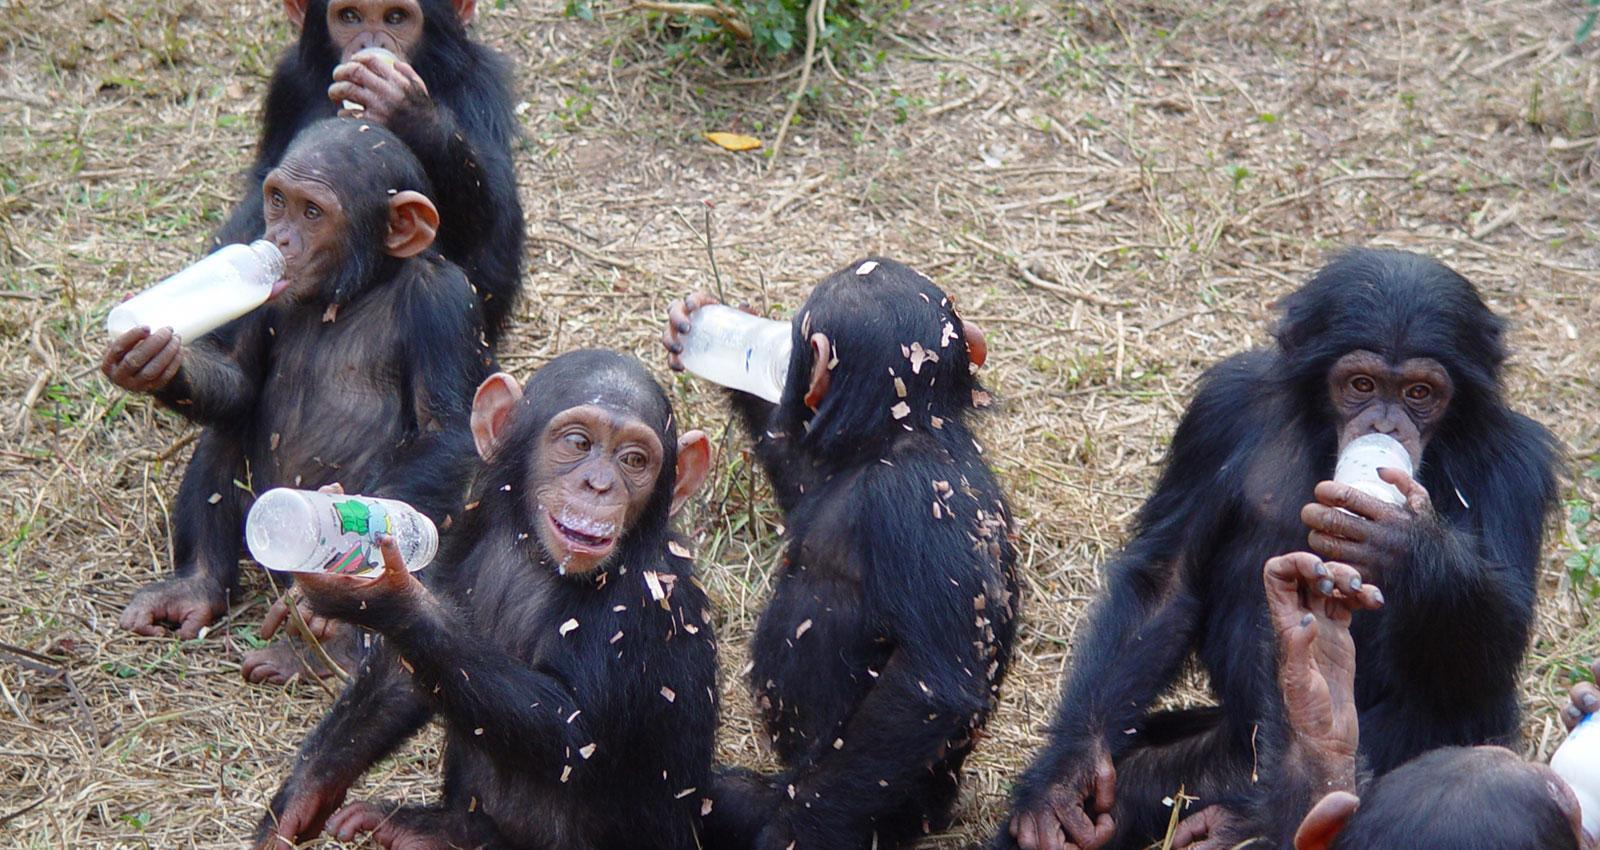 Drinking Chimps